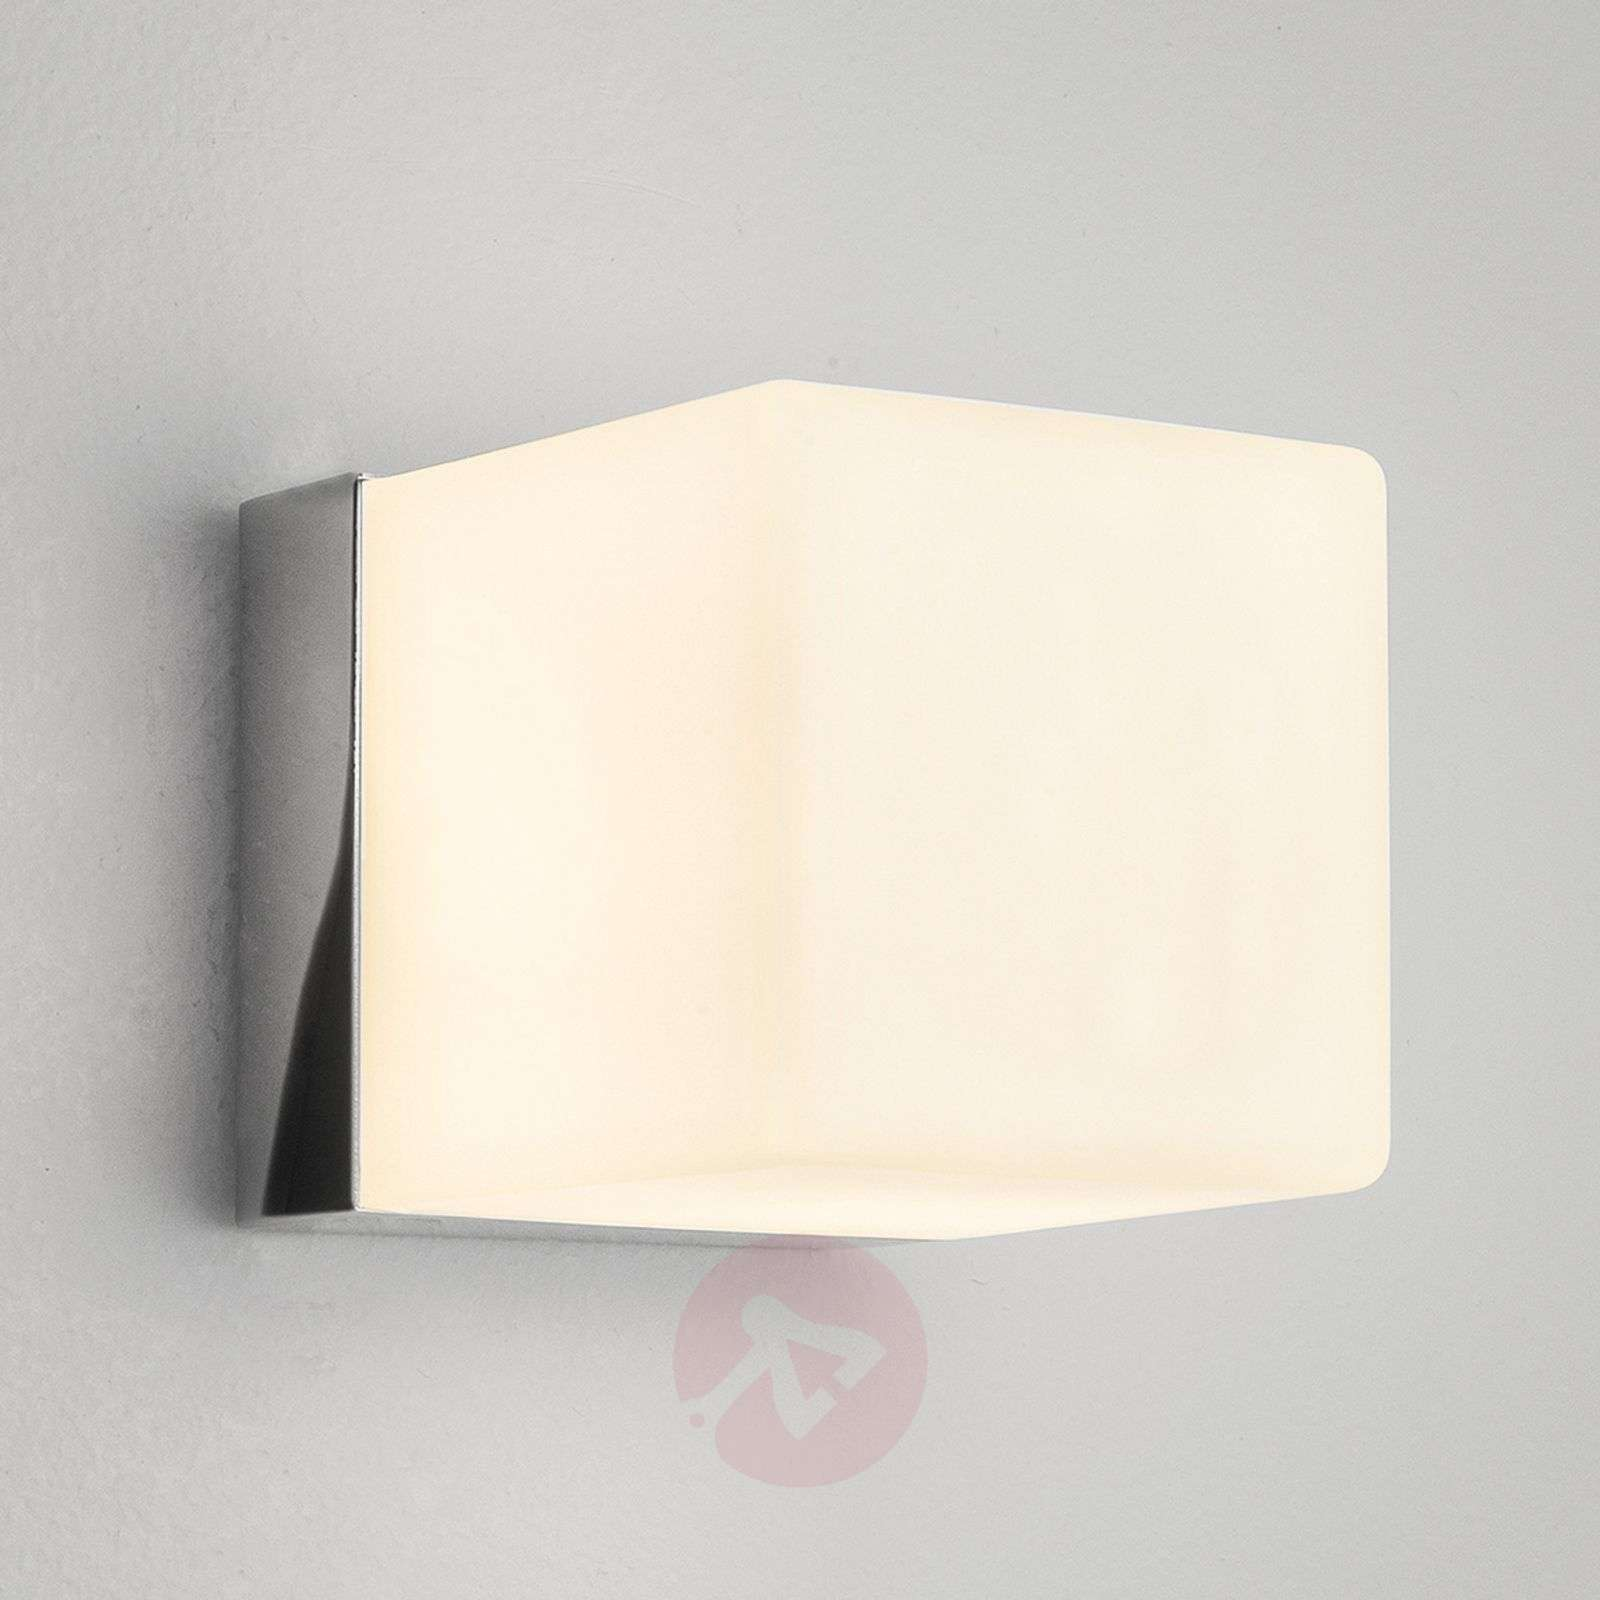 Cube Wall Light Simple-1020026-02